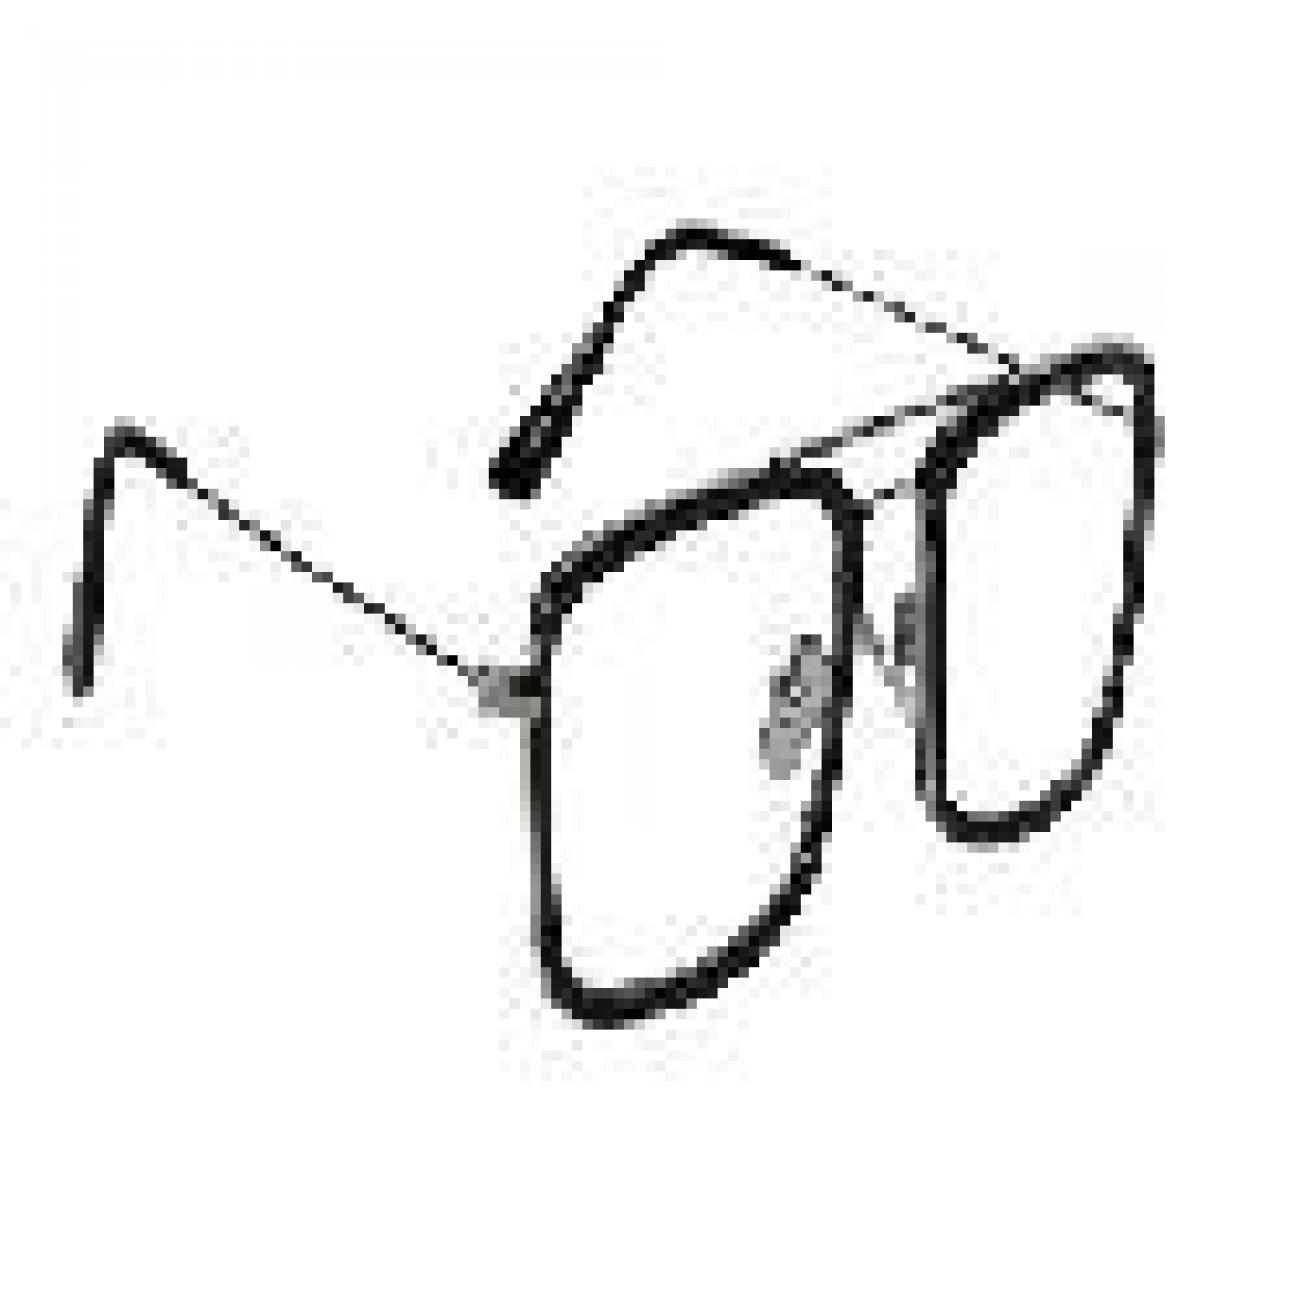 Spectacle_Frames_